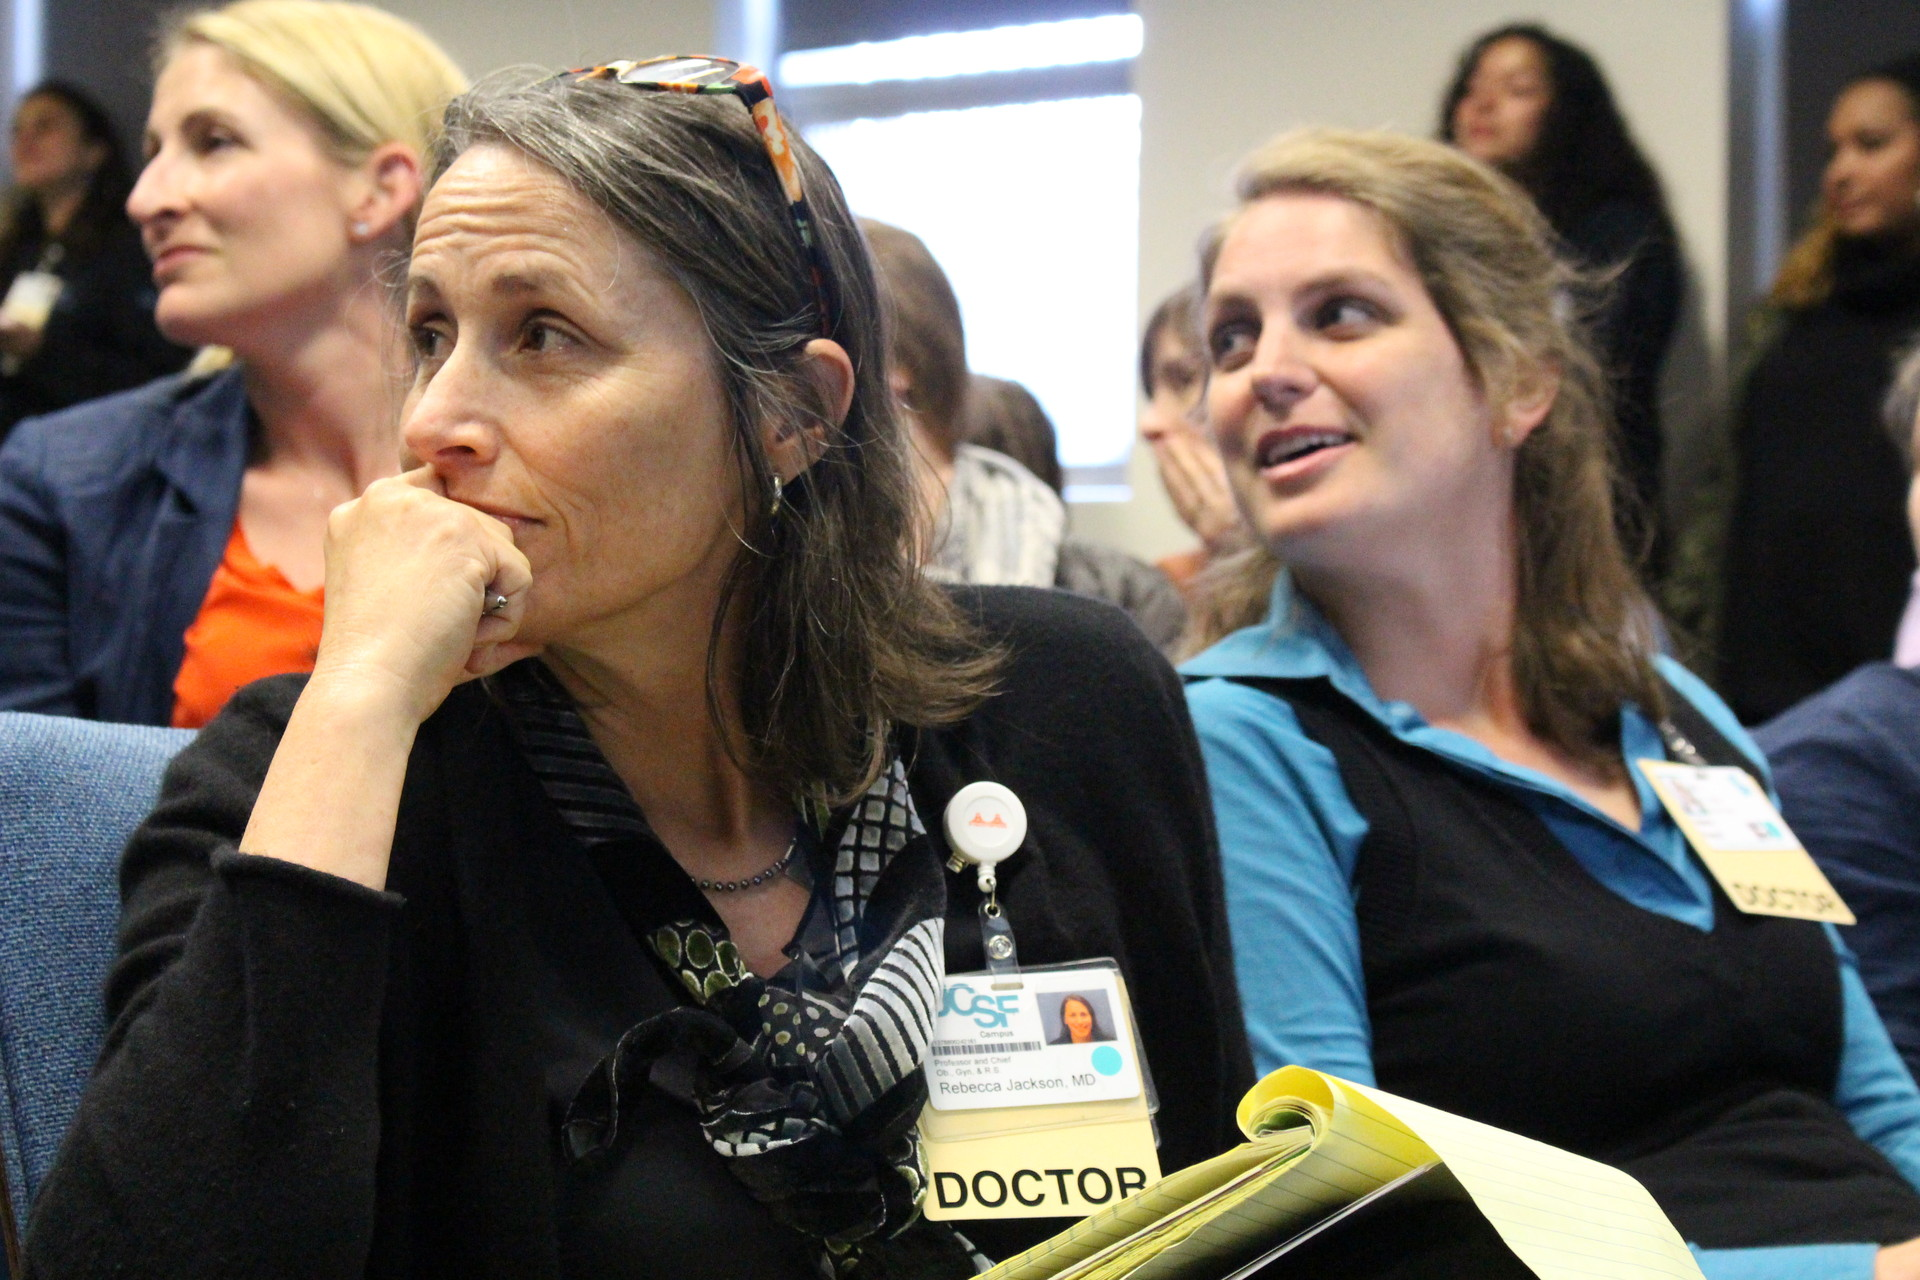 "Dr. Rebecca Jackson, New Generation's main supervisor, and Dr. Valerie French (right), medical director, listen to speakers at a community forum in April about the potential closure of New Generation. After the meeting, Jackson said she was hopeful New Generation could find more funds to stay open ""given the huge outpouring of concerned people."""